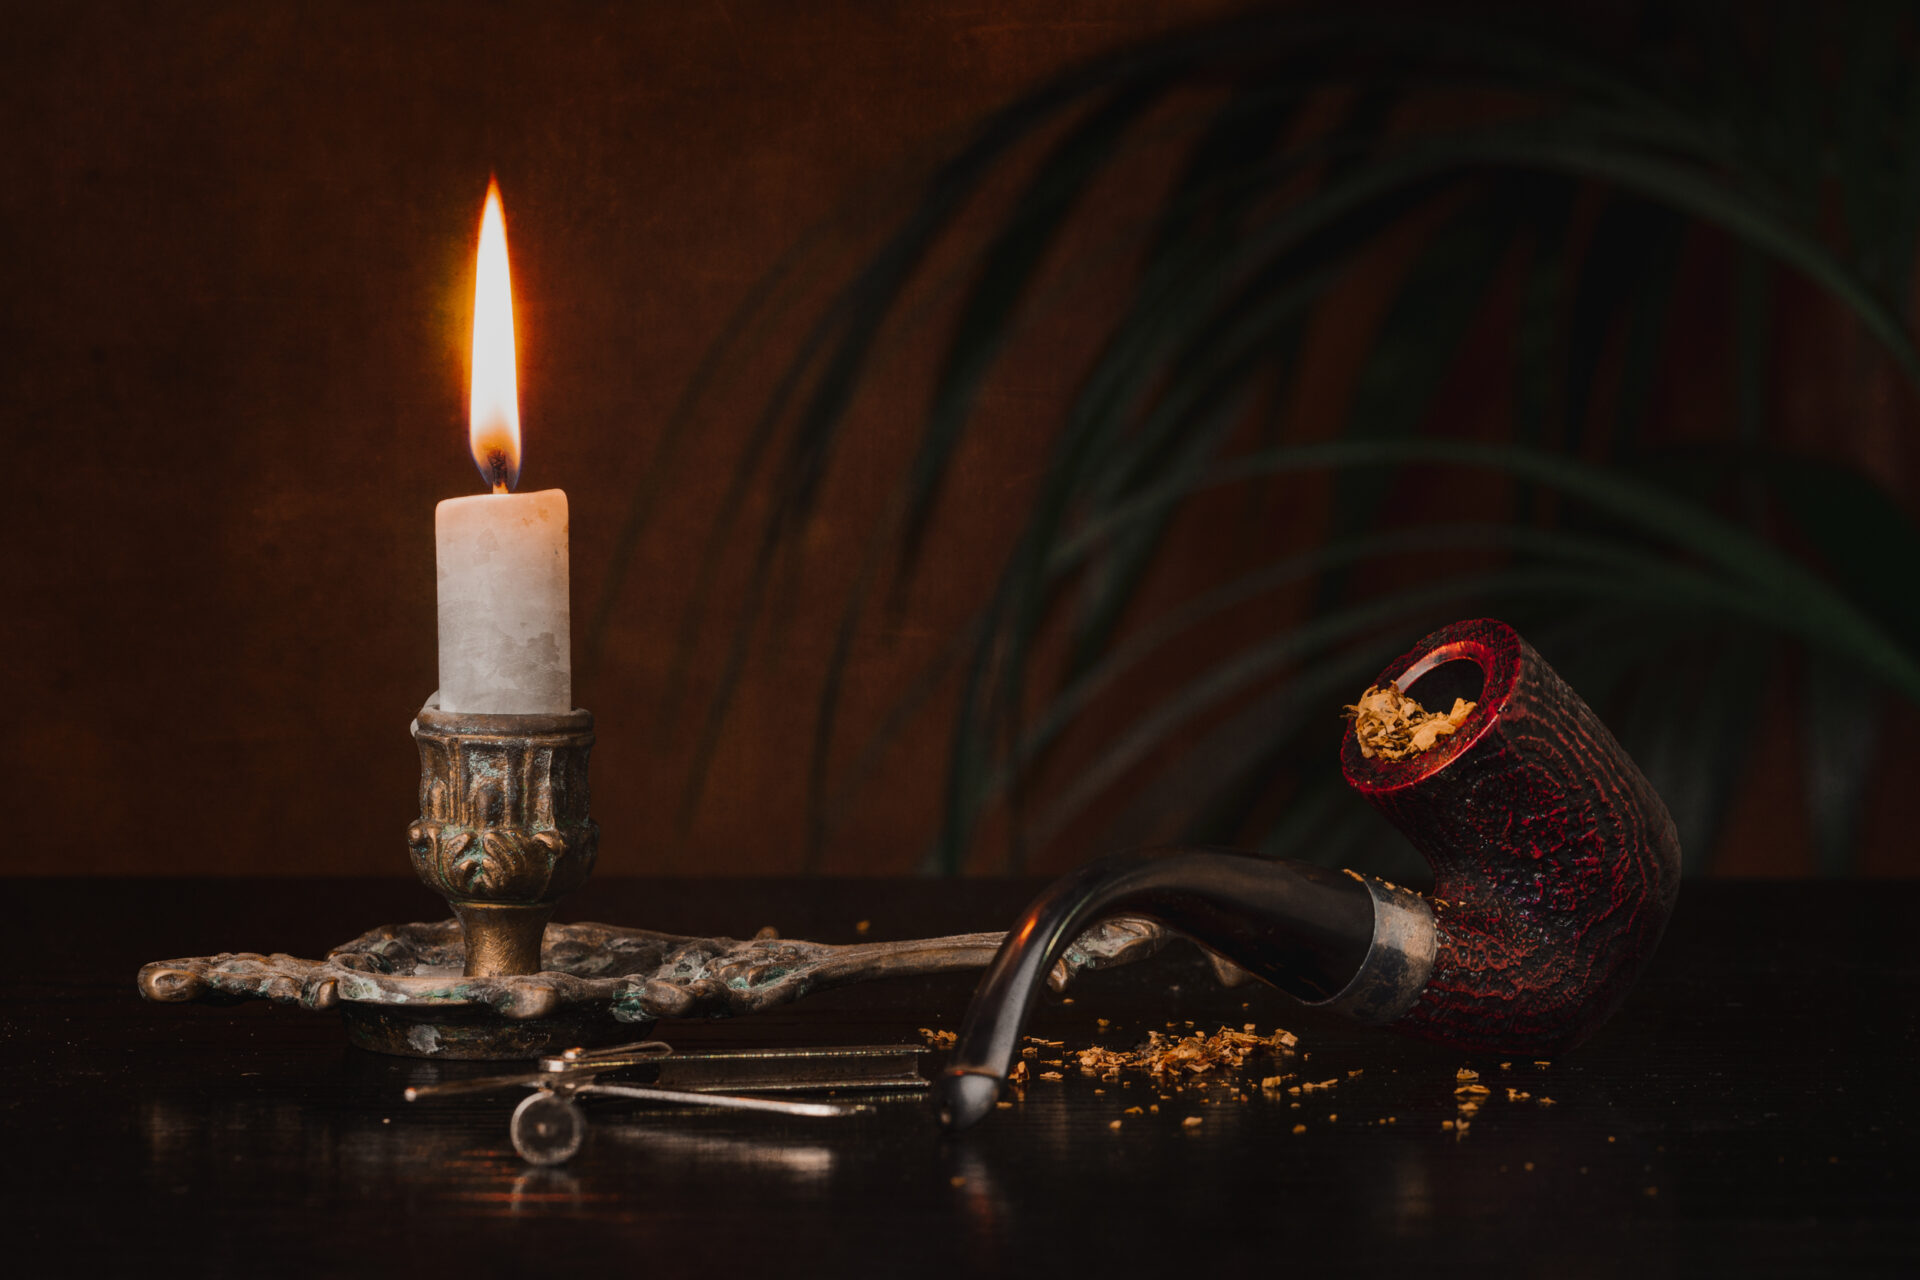 still life photo of pipe and candle